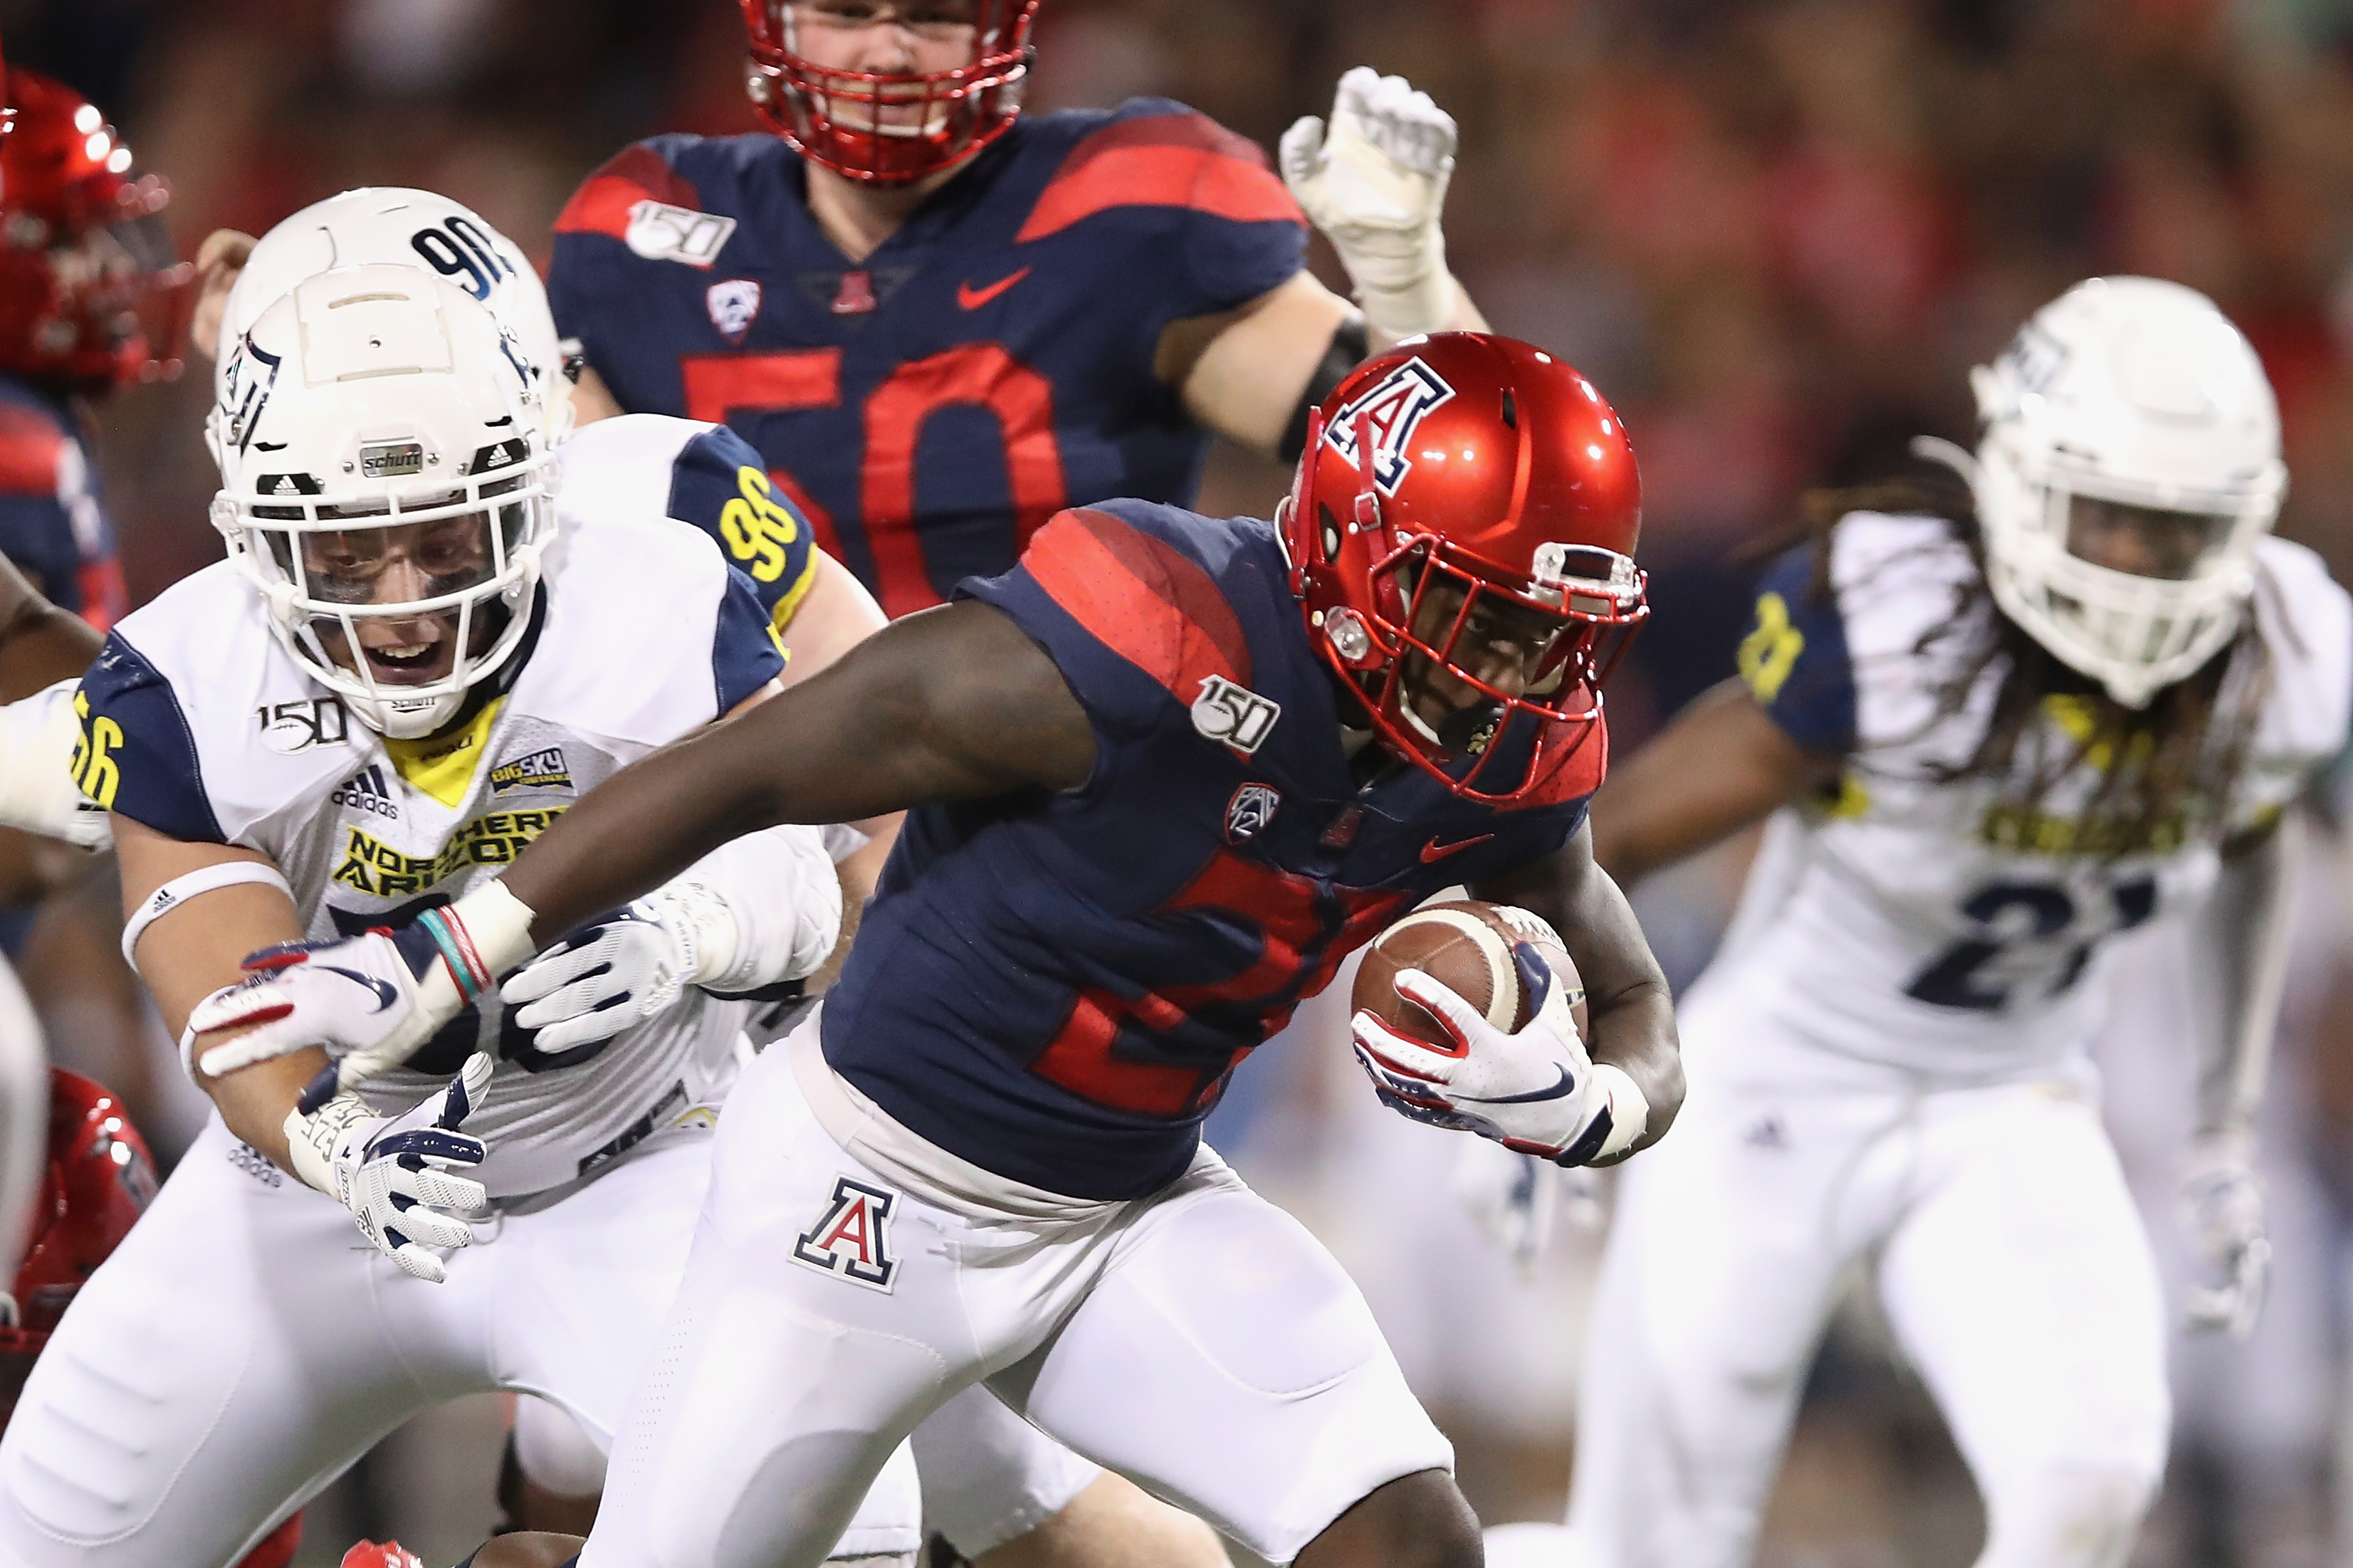 texas-tech-vs-arizona-game-score-predictions-football-odds-wildcats-time-tv-channel-live-stream